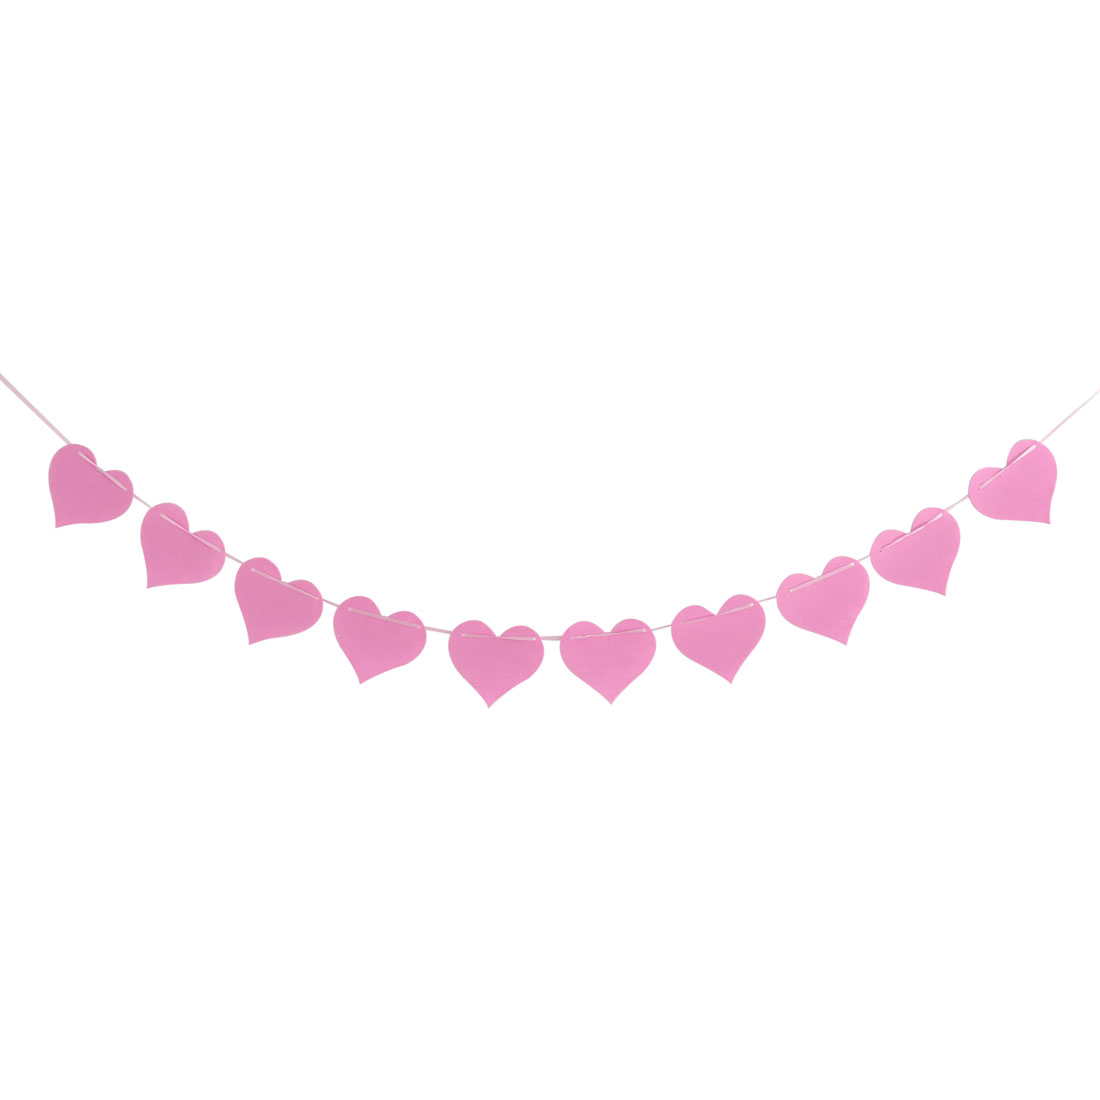 Non-woven Fabric Heart Shaped DIY Festival Decor Photo Prop Bunting Banner Pink